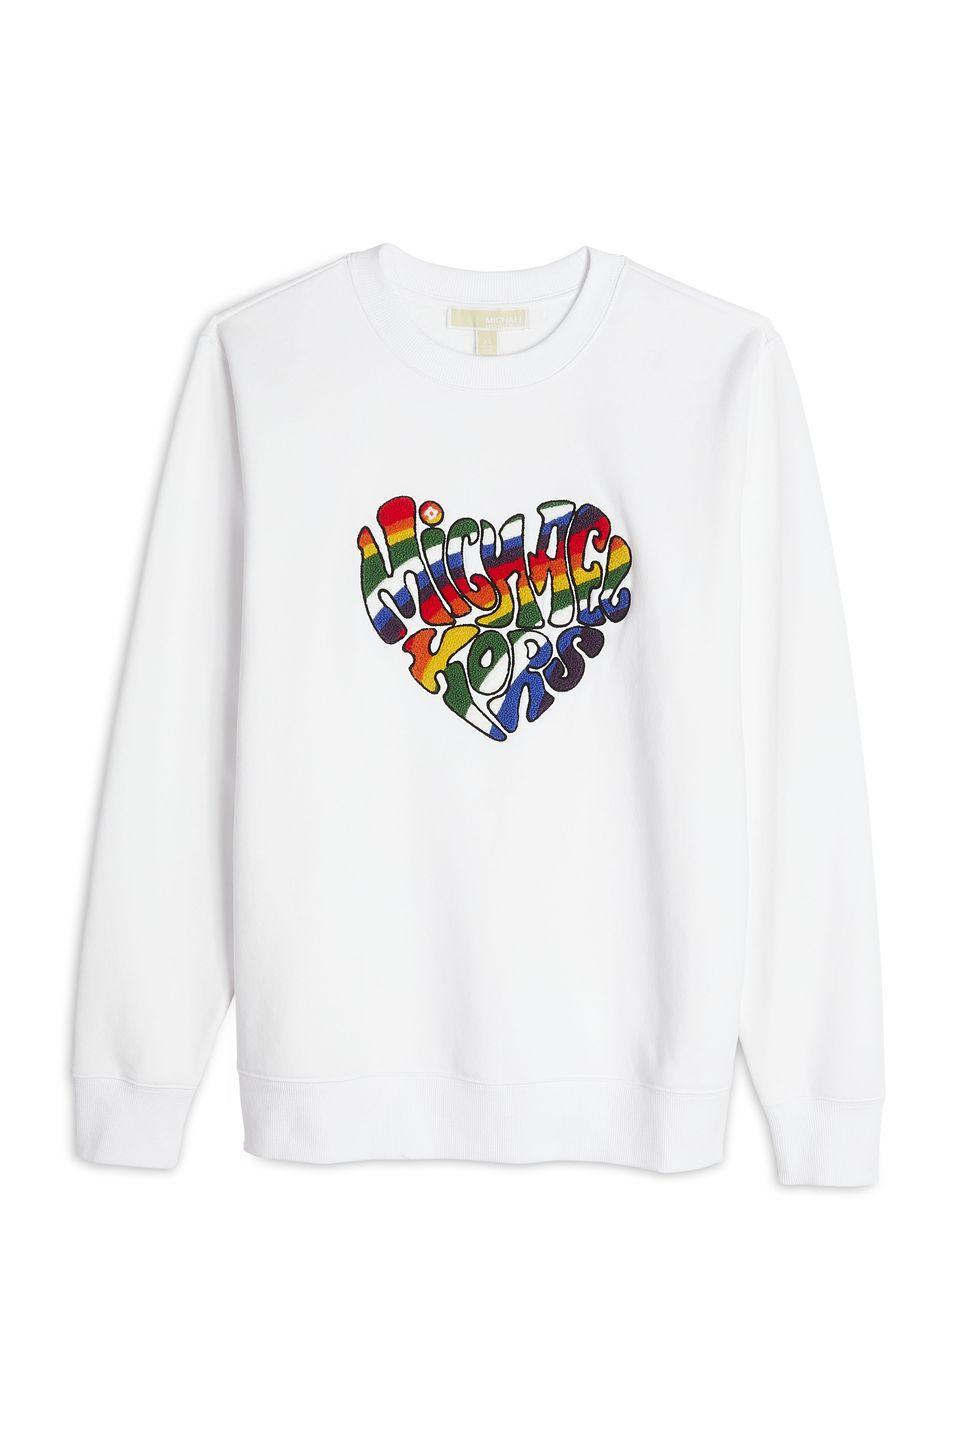 <p>Fronted by four LGBTQ+ TikTok stars, Michael Kors' 2021 Pride collection is a colourful mix of sweatshirts, T-shirts, swimsuits, backpacks, slides and hats. All profits from the sale of the special-edition T-shirt benefit OutRight Action International, a leading global human rights organisation fighting for the rights of LGBTIQ+ people around the world.</p>